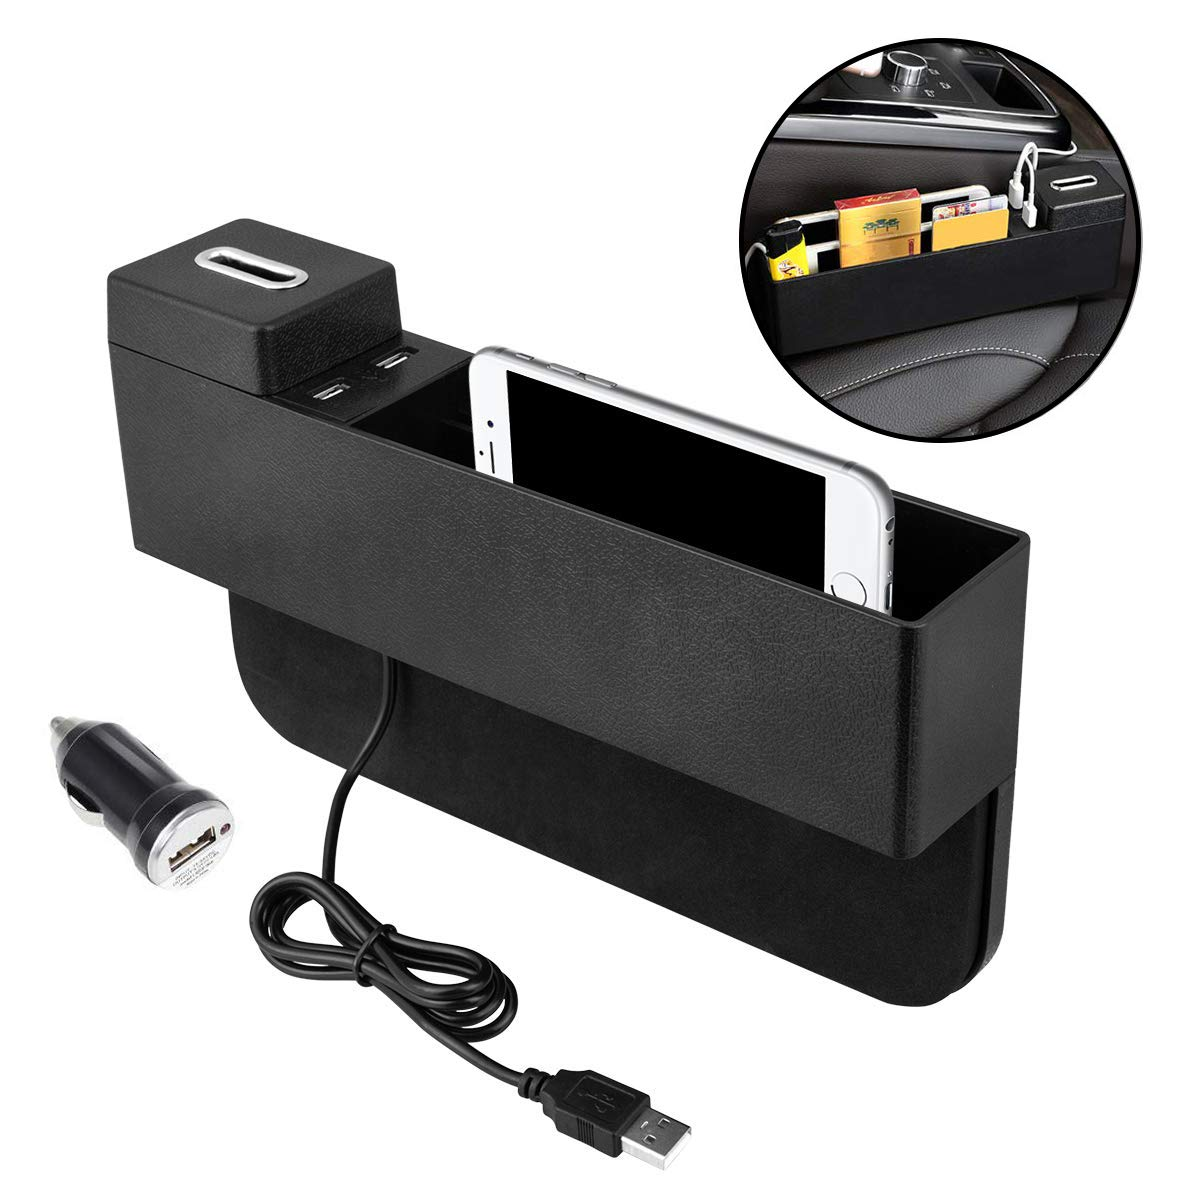 Oneuda Car Seat Side Pocket Console Organizer USB Ports Seat Gap Filler Car Interior Accessories for Cellphones Keys Cards Wallets Coins (Black) by Oneuda